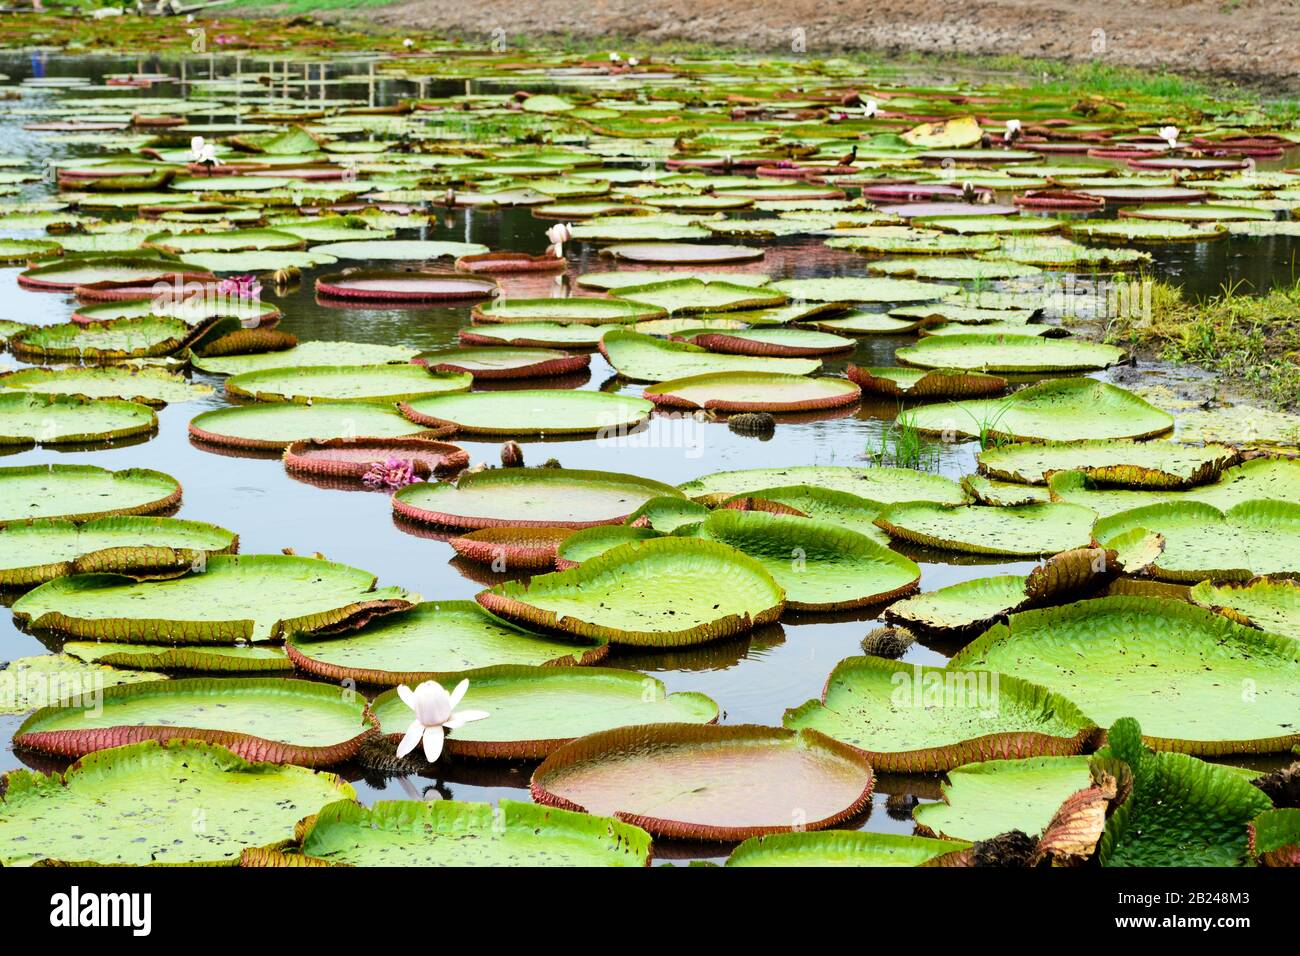 Many water lily plants, scientific name Victoria, with some ...